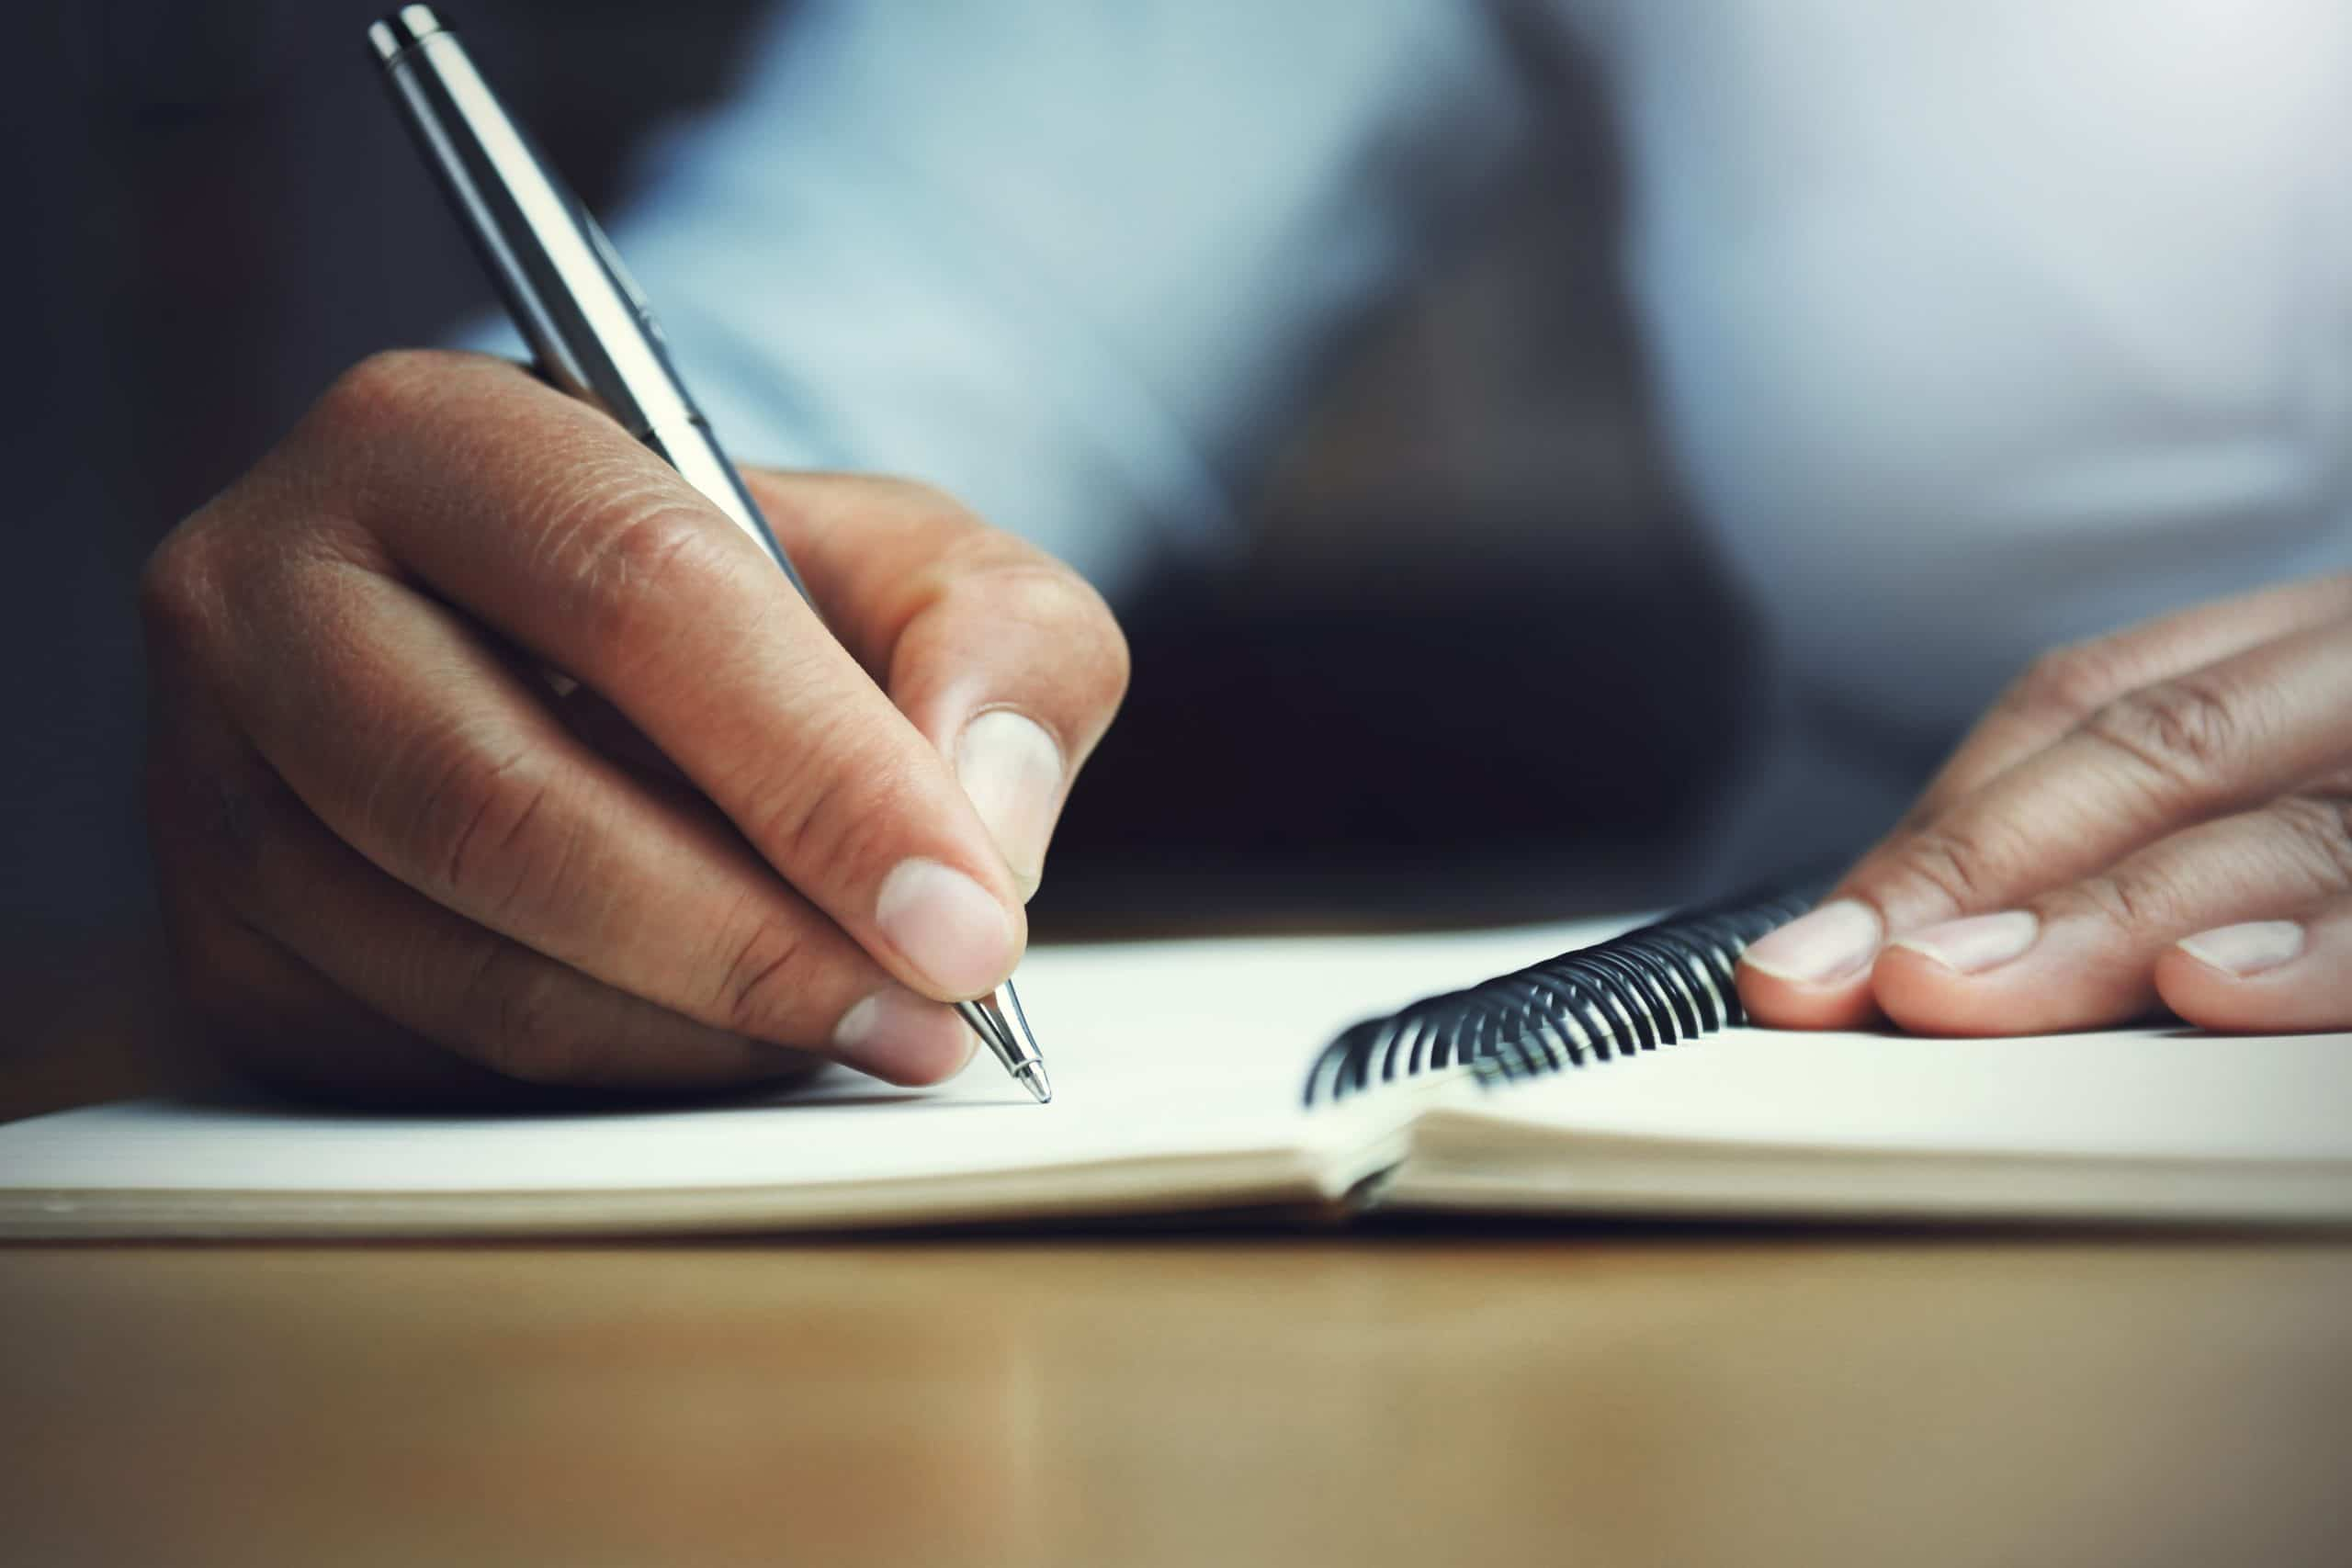 Journaling is a great selfcare practice. It can be used to address all areas of your wellbeing. Here are 20 reasons tojournal as part of your selfcare.